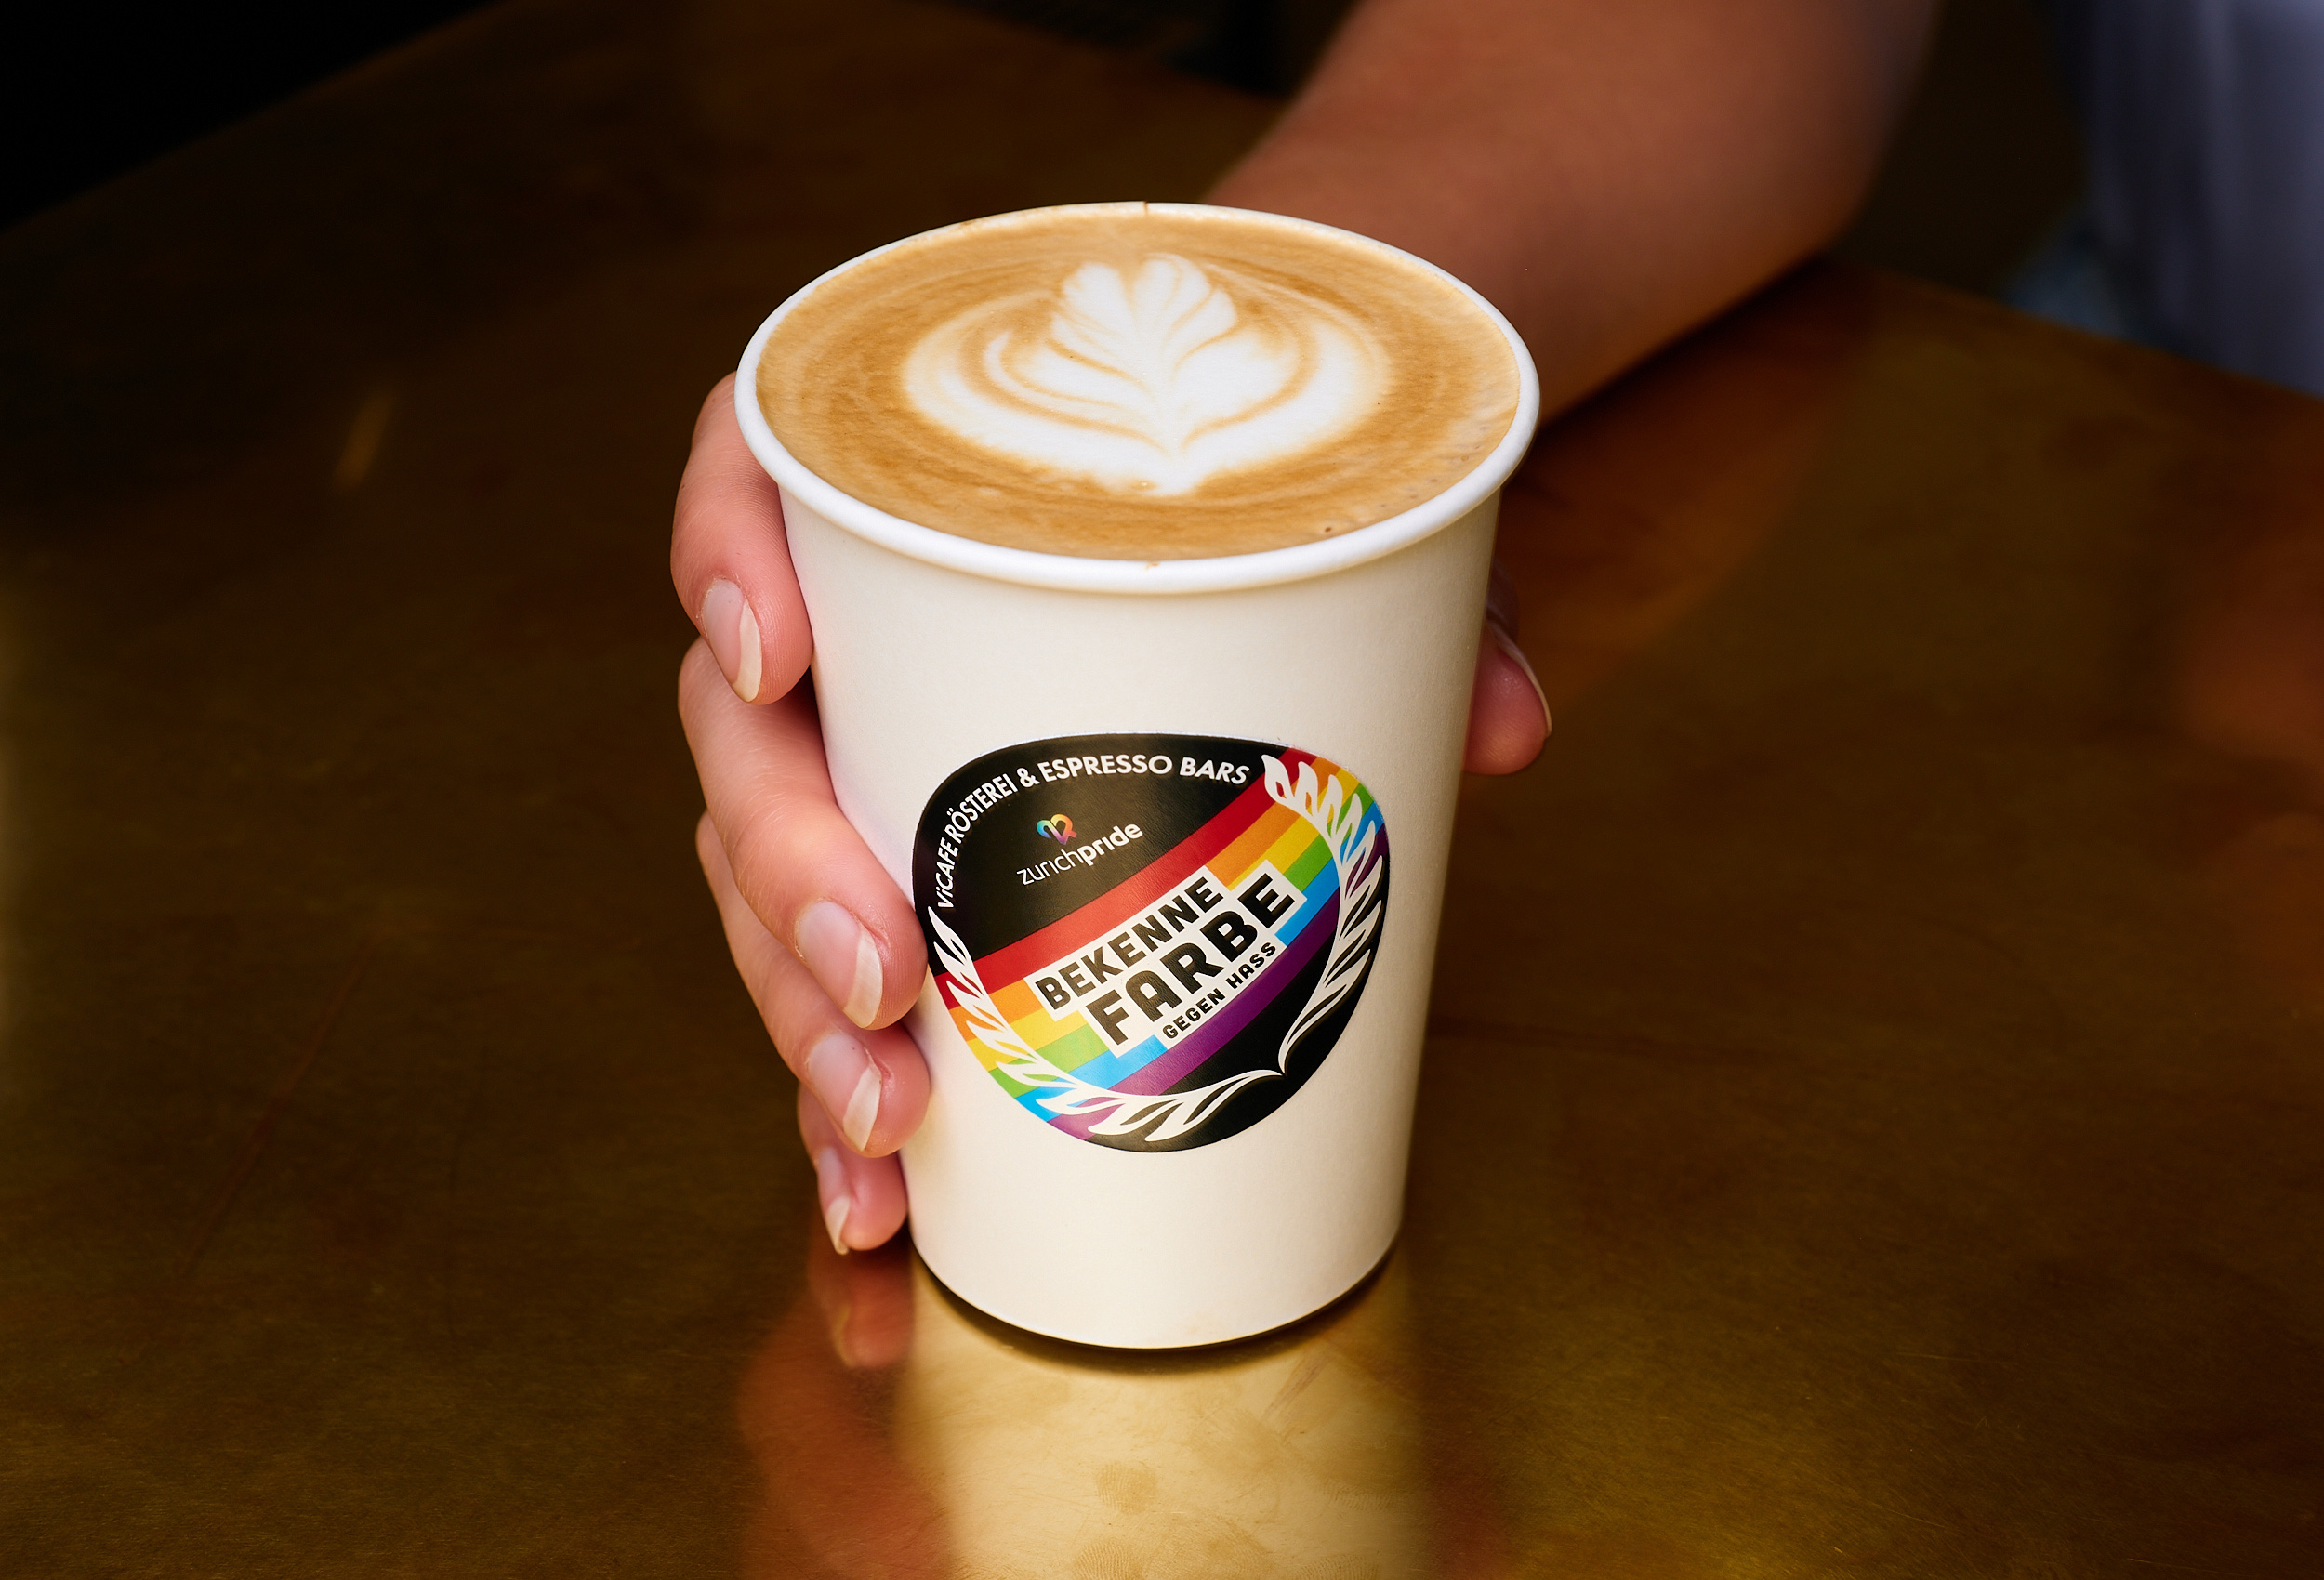 vicafe flat white coffee with pride sticker